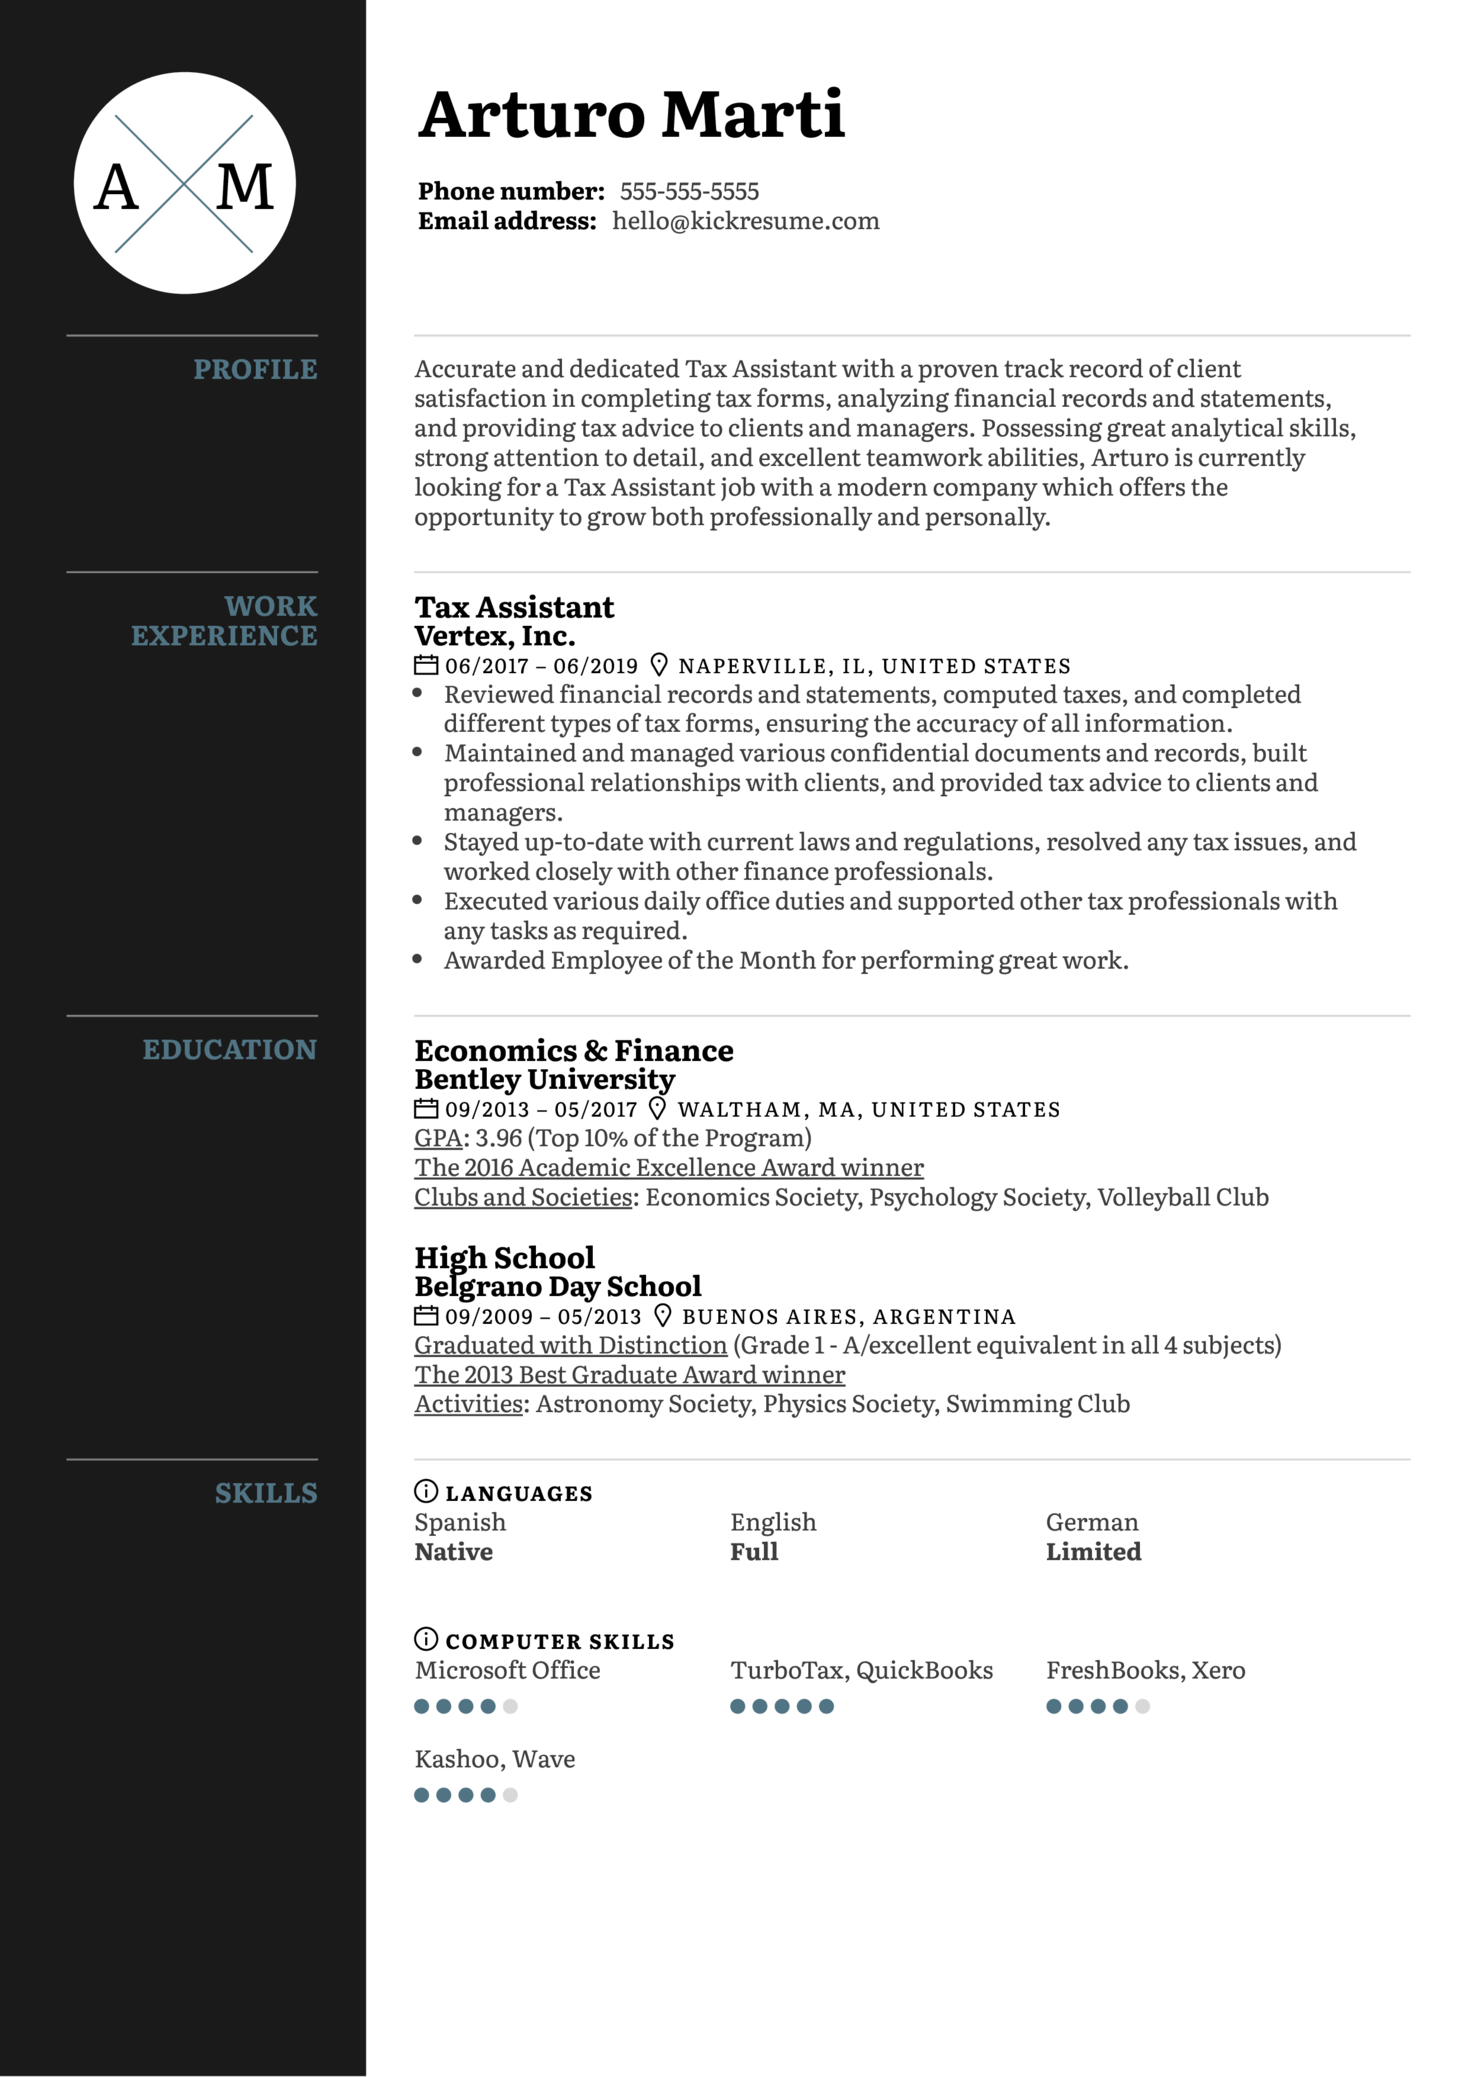 Tax Assistant Resume Sample (Part 1)